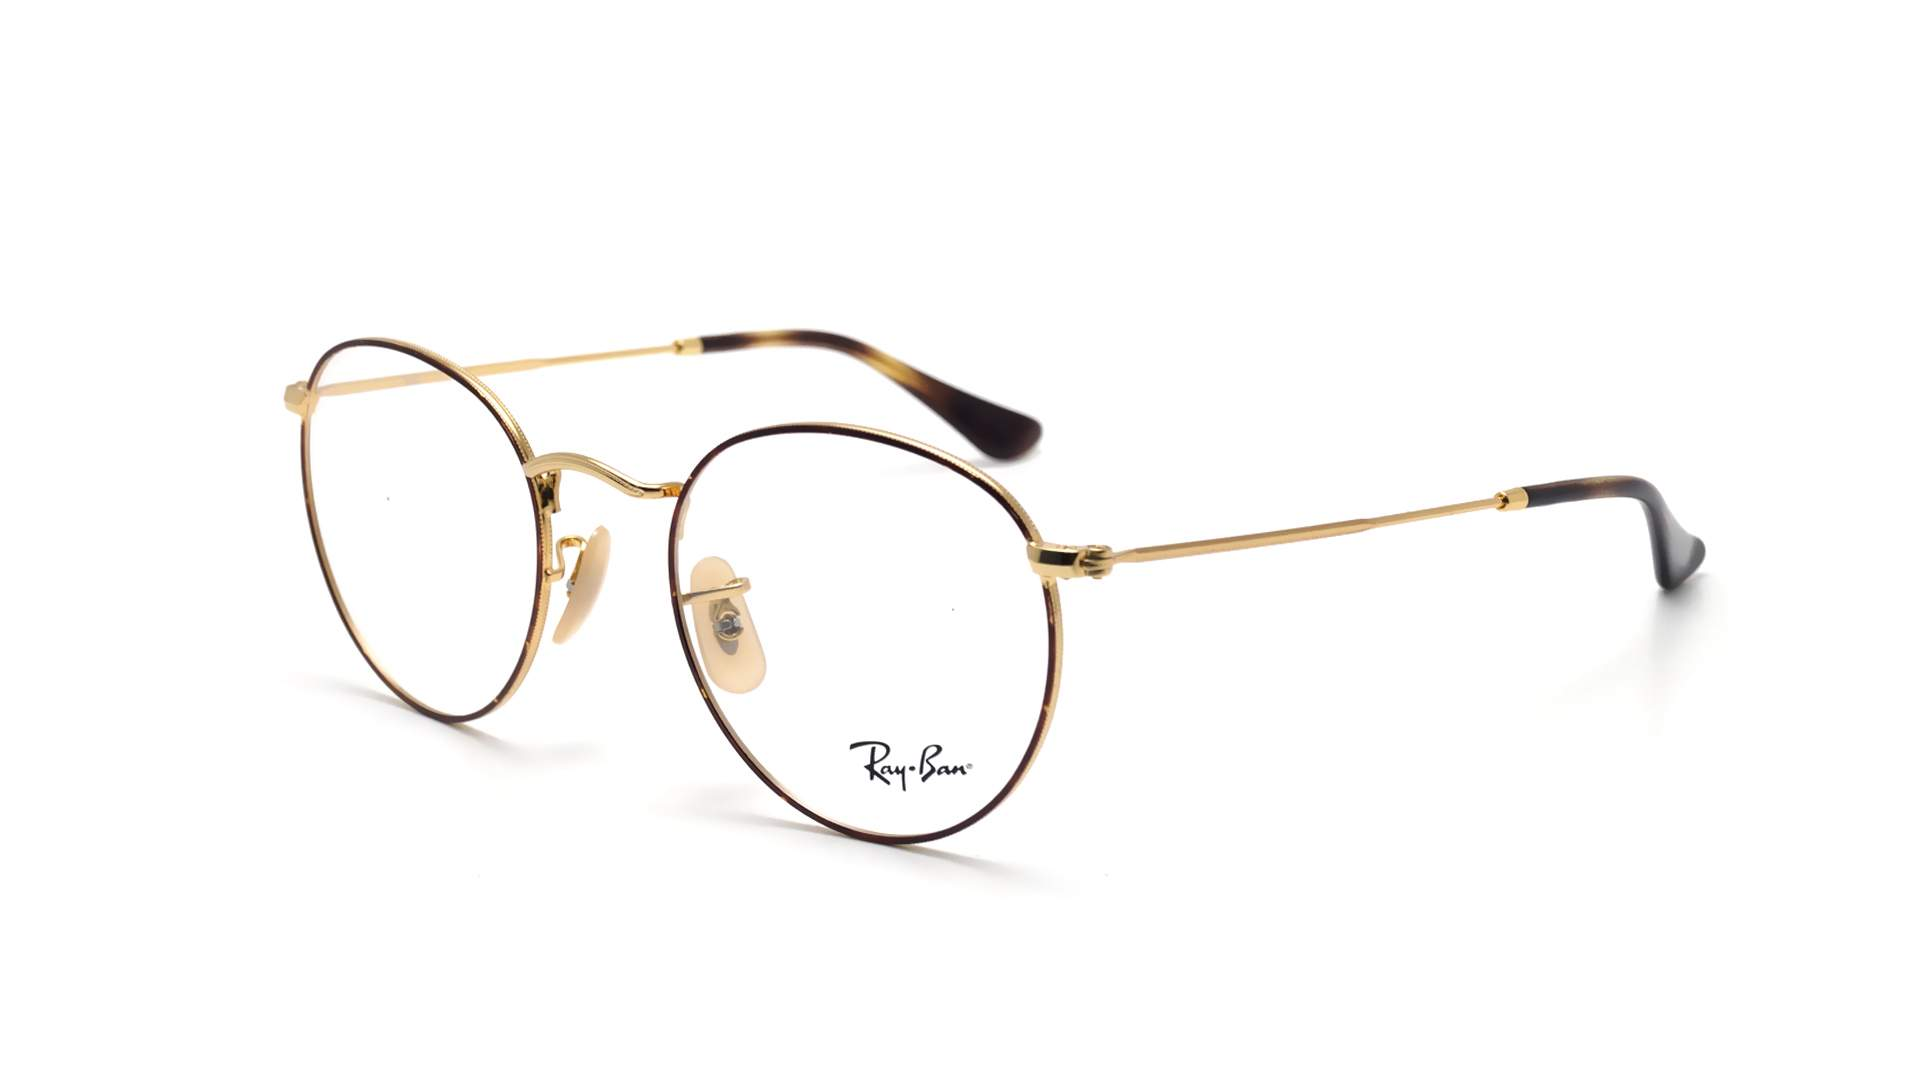 Lunettes de vue Ray-Ban Round metal Optics Écaille RX3447 RB3447V 2945  50-21 Medium f59662f12595